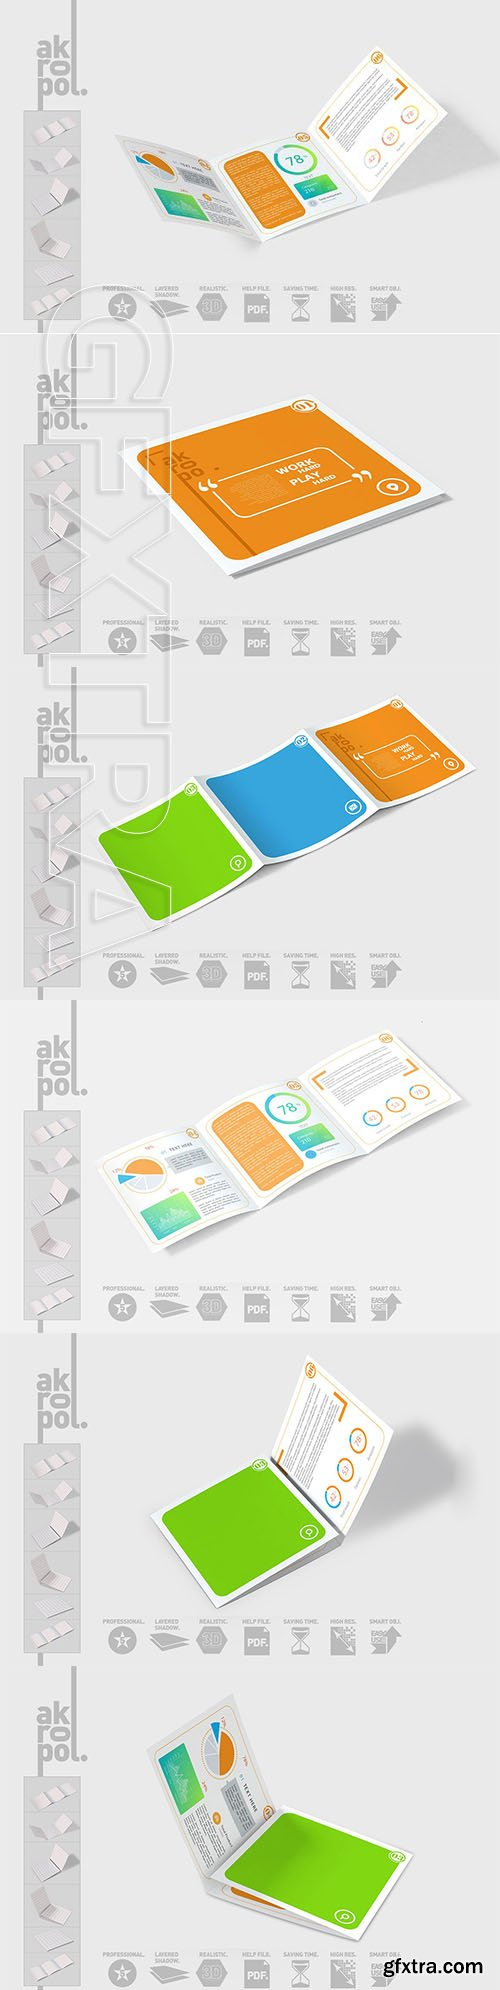 CreativeMarket - Square Trifold Brochure Mock-up 3054995